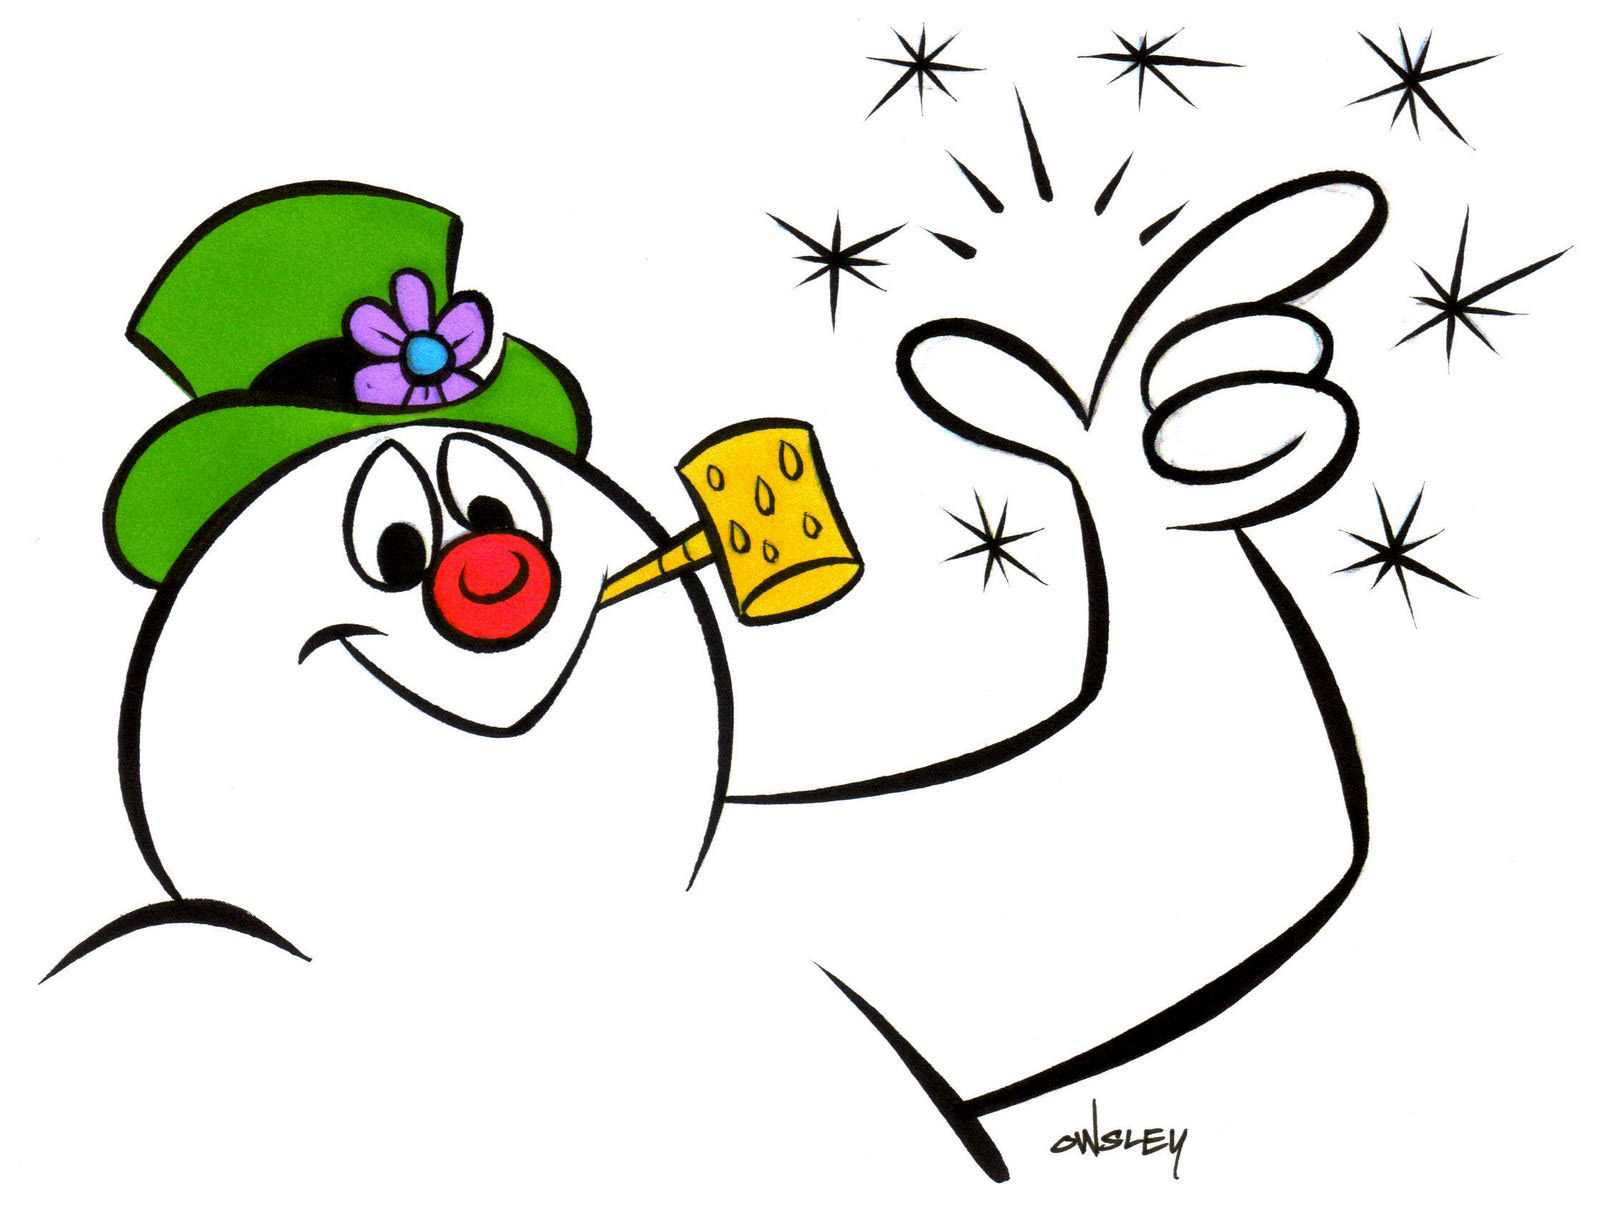 frosty the snowman tv special great american things rh greatamericanthings net frosty the snowman clipart free Frosty the Snowman Face Clip Art